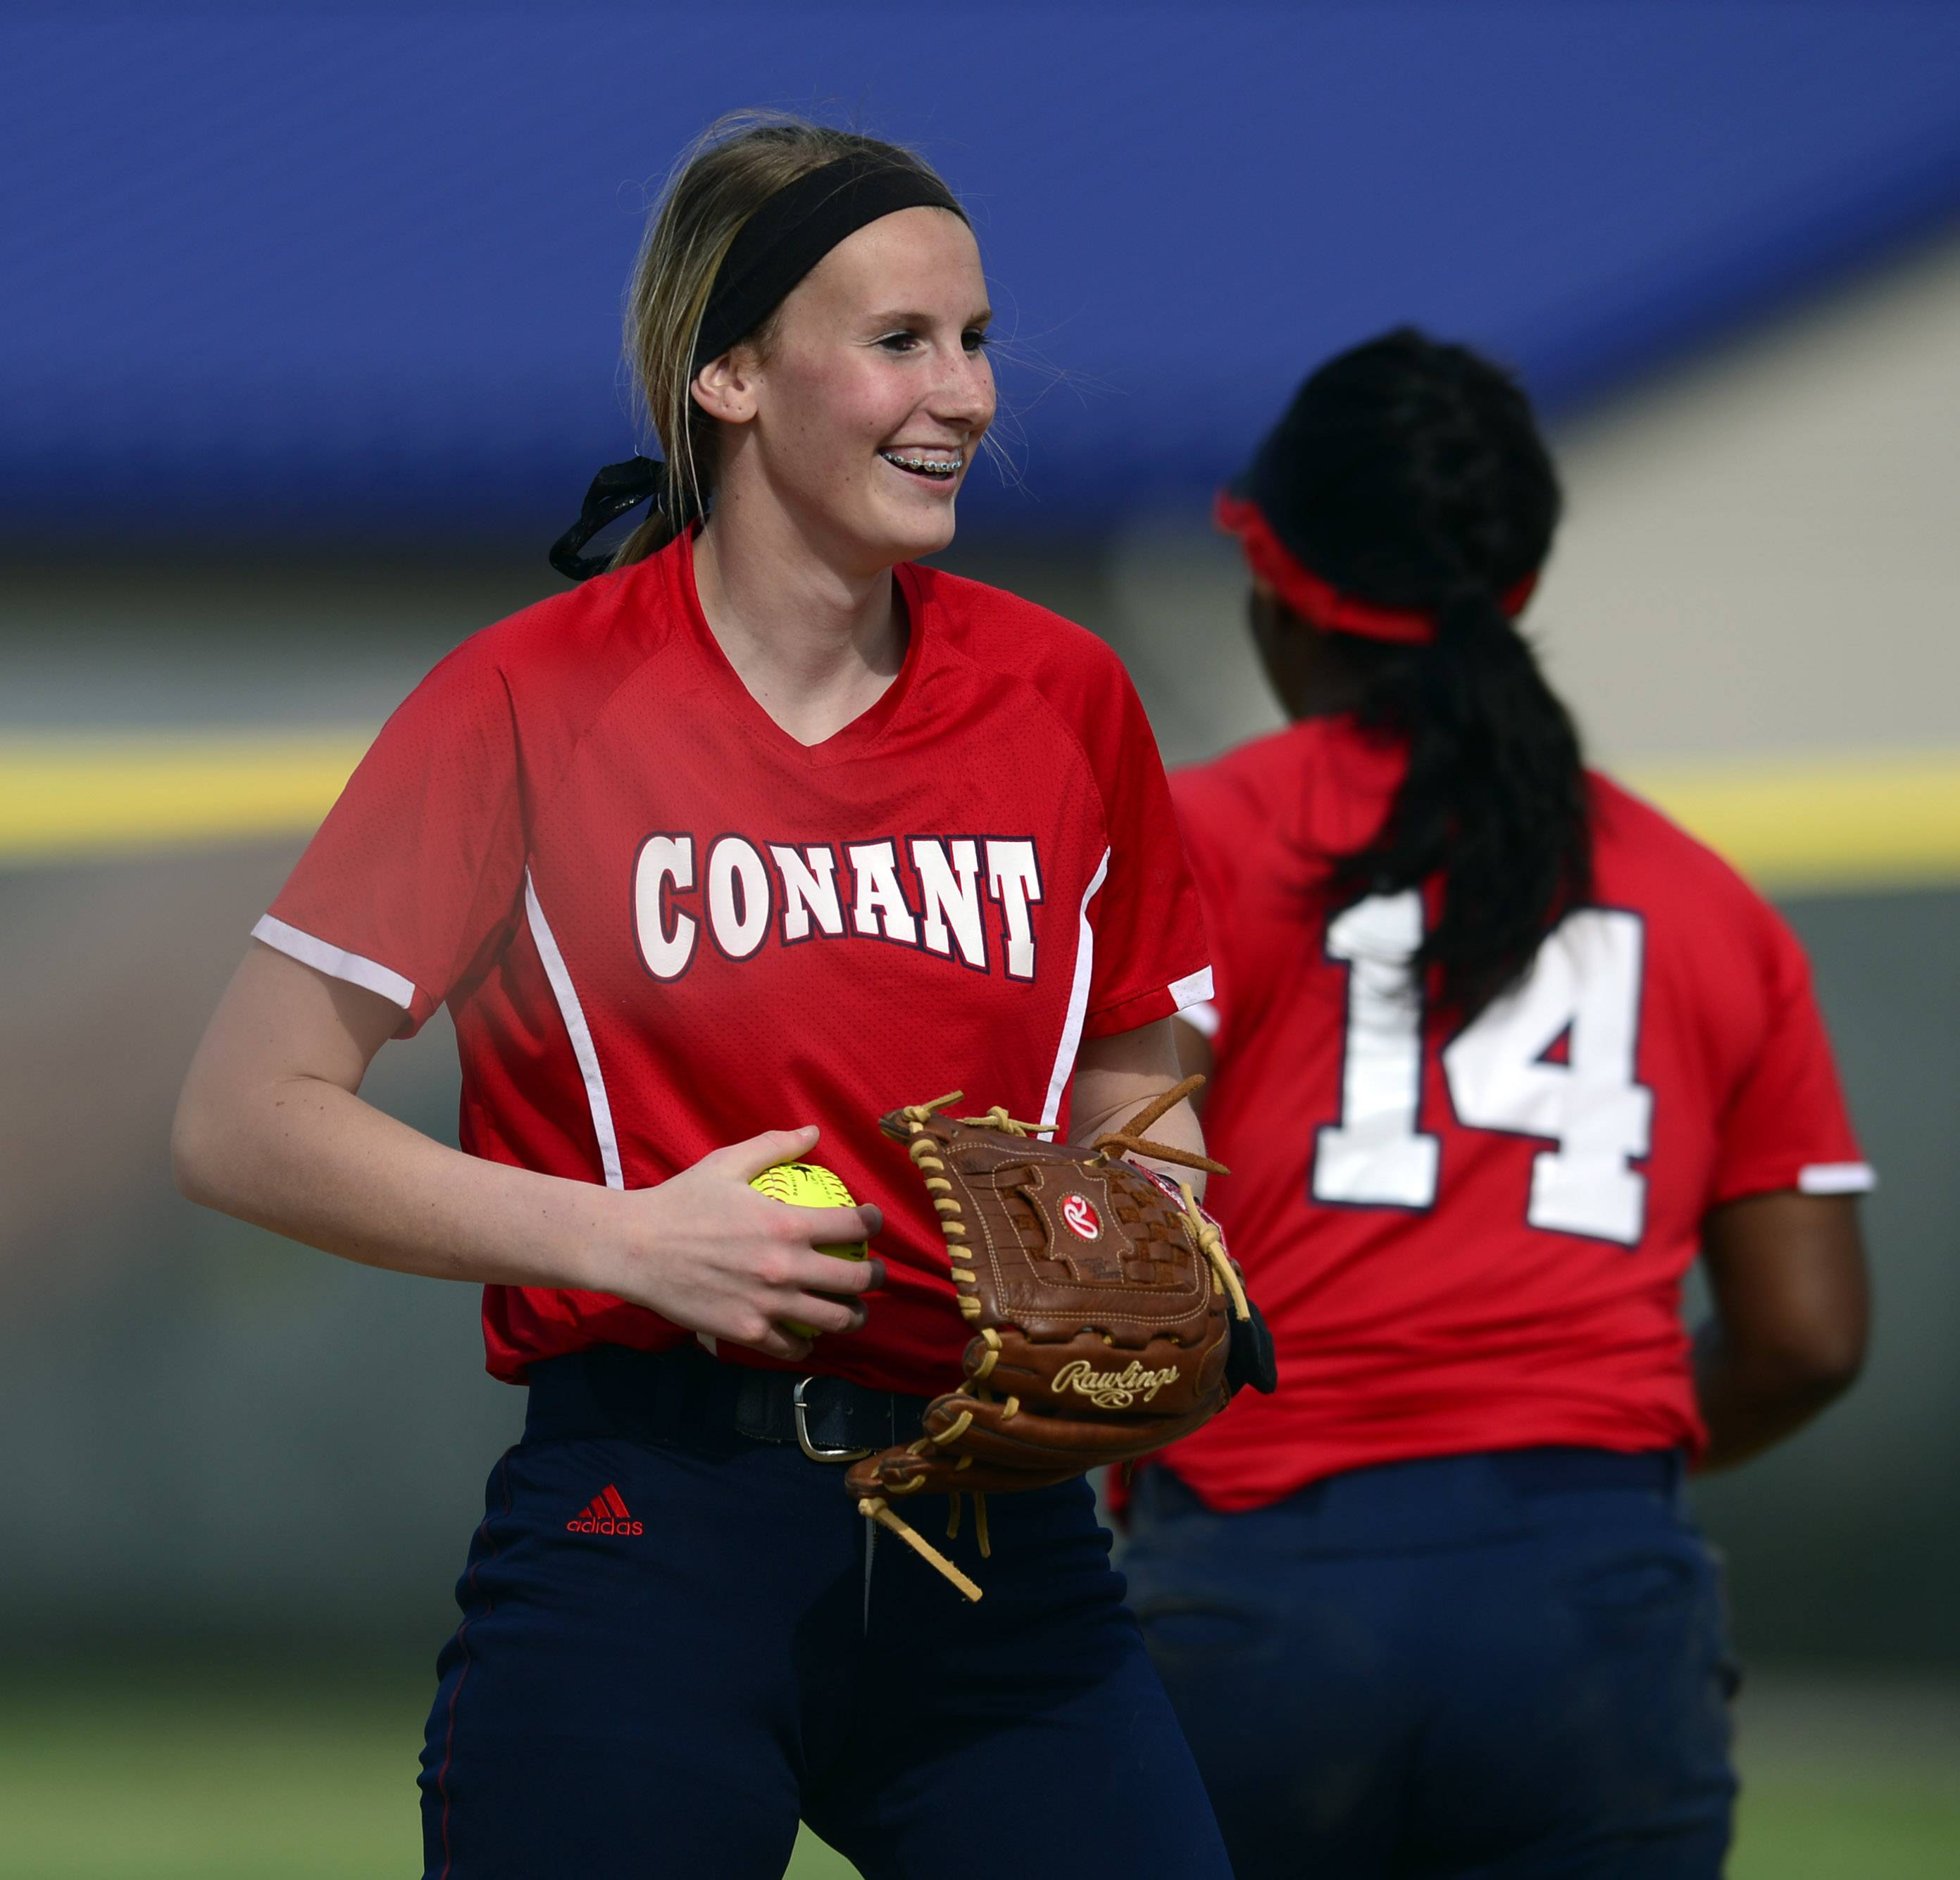 Conant pitcher Kali Schumacher is beaming with confidence early on in the Mid-Suburban League championship softball game against Buffalo Grove at Conant on Thursday.